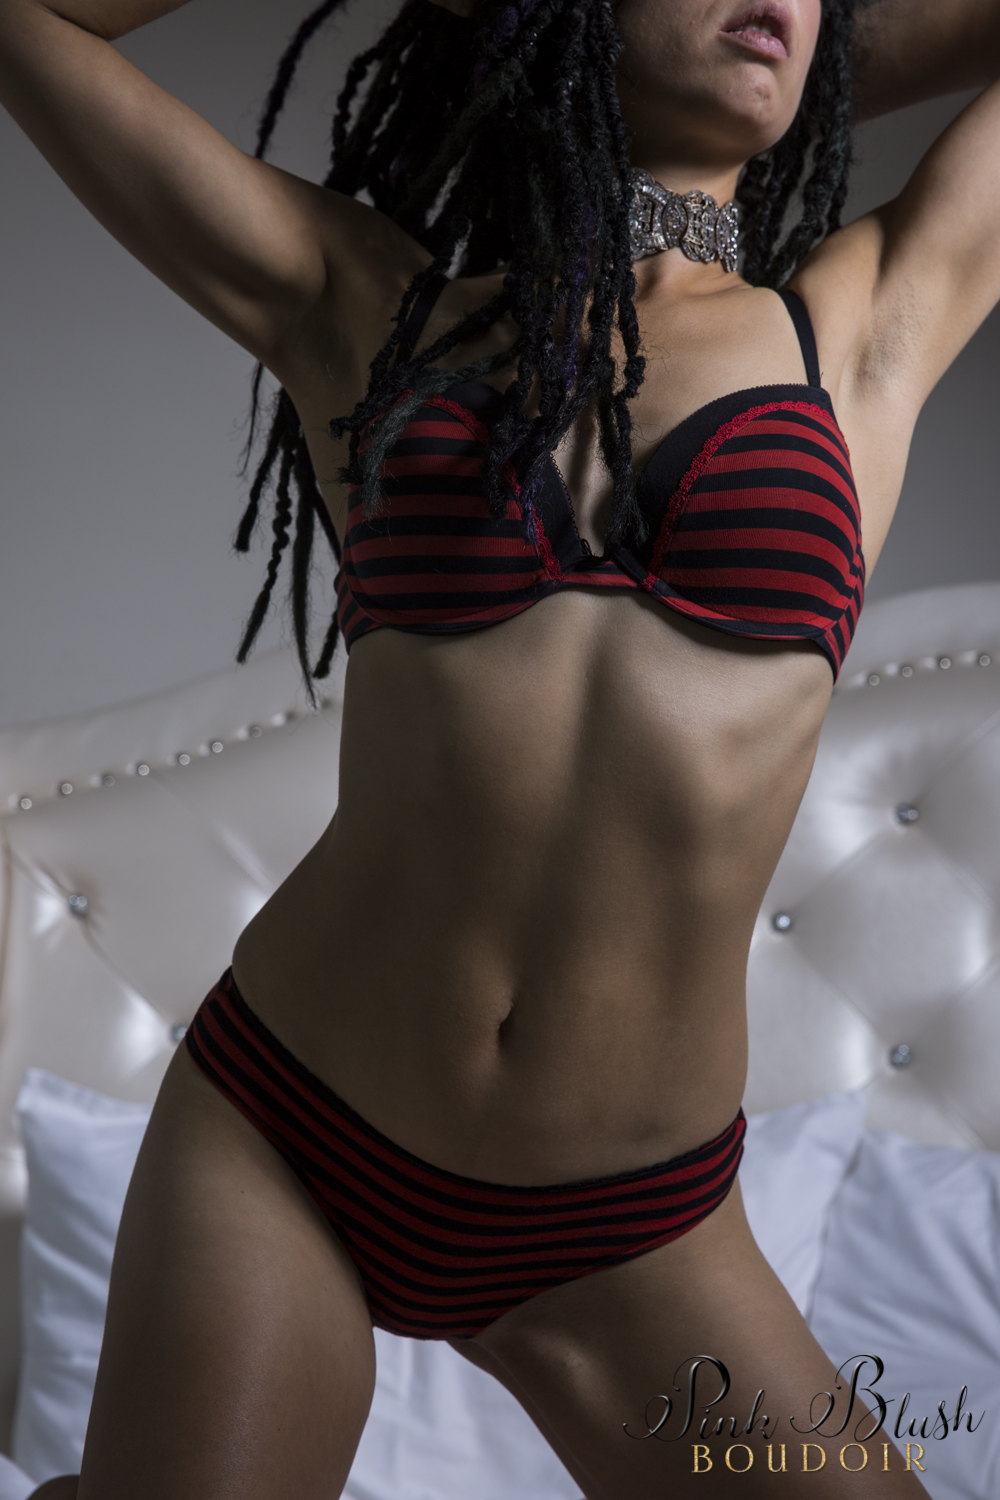 Boudoir Photography Edmonton, woman's body in a black and red striped bra and panty set